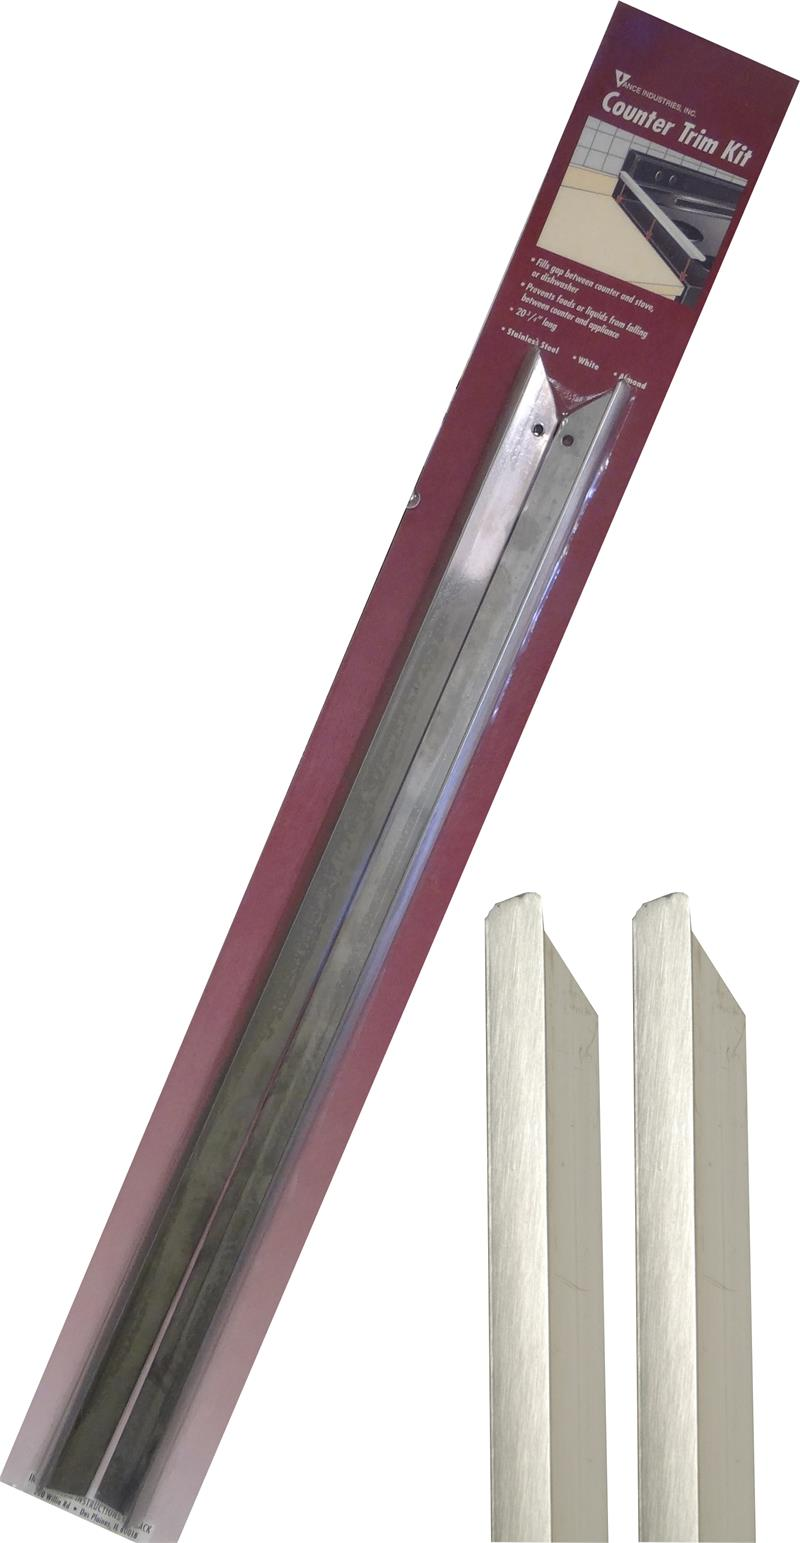 Vance Stainless Steel Counter Trim Kit 23 3 4 2 Pack